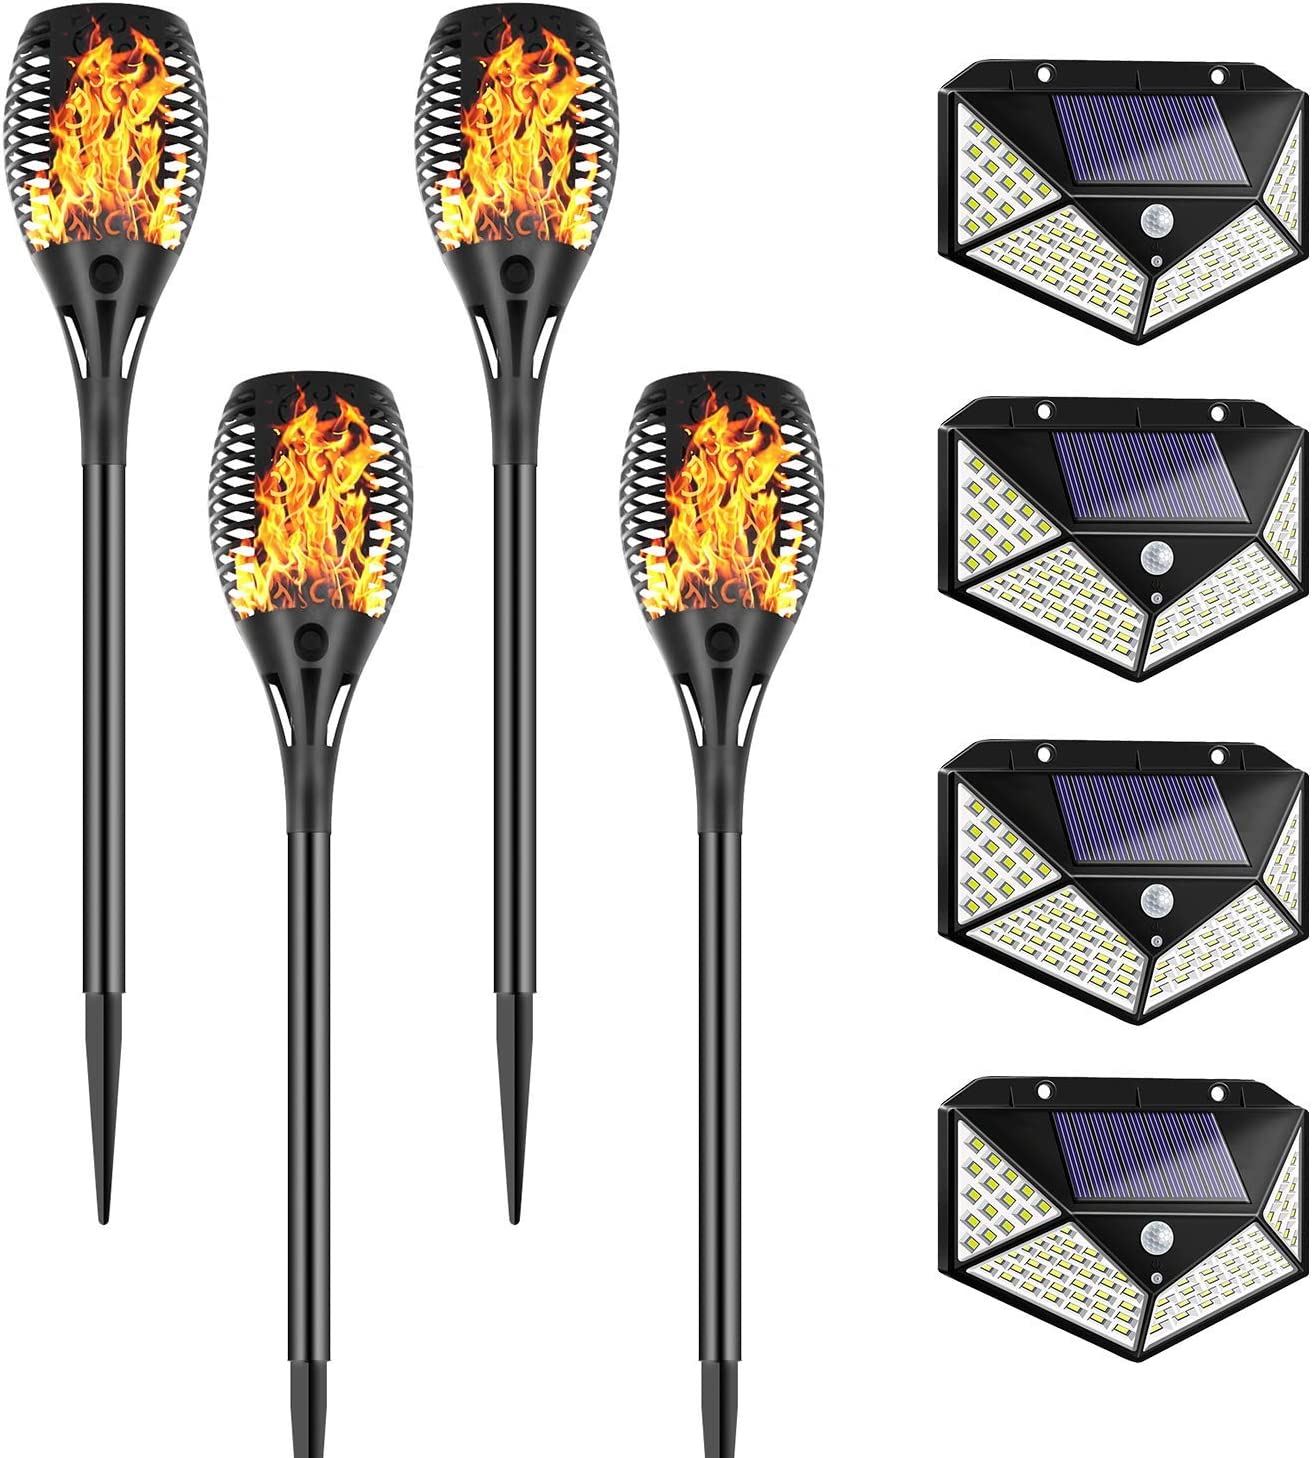 Solar Lighs Outdoor, Auto On/Off Dust to Dawn, Waterproof Lawn Decoration, Solar Powered Light for Patio Deck, Yard, Garden, Driveway